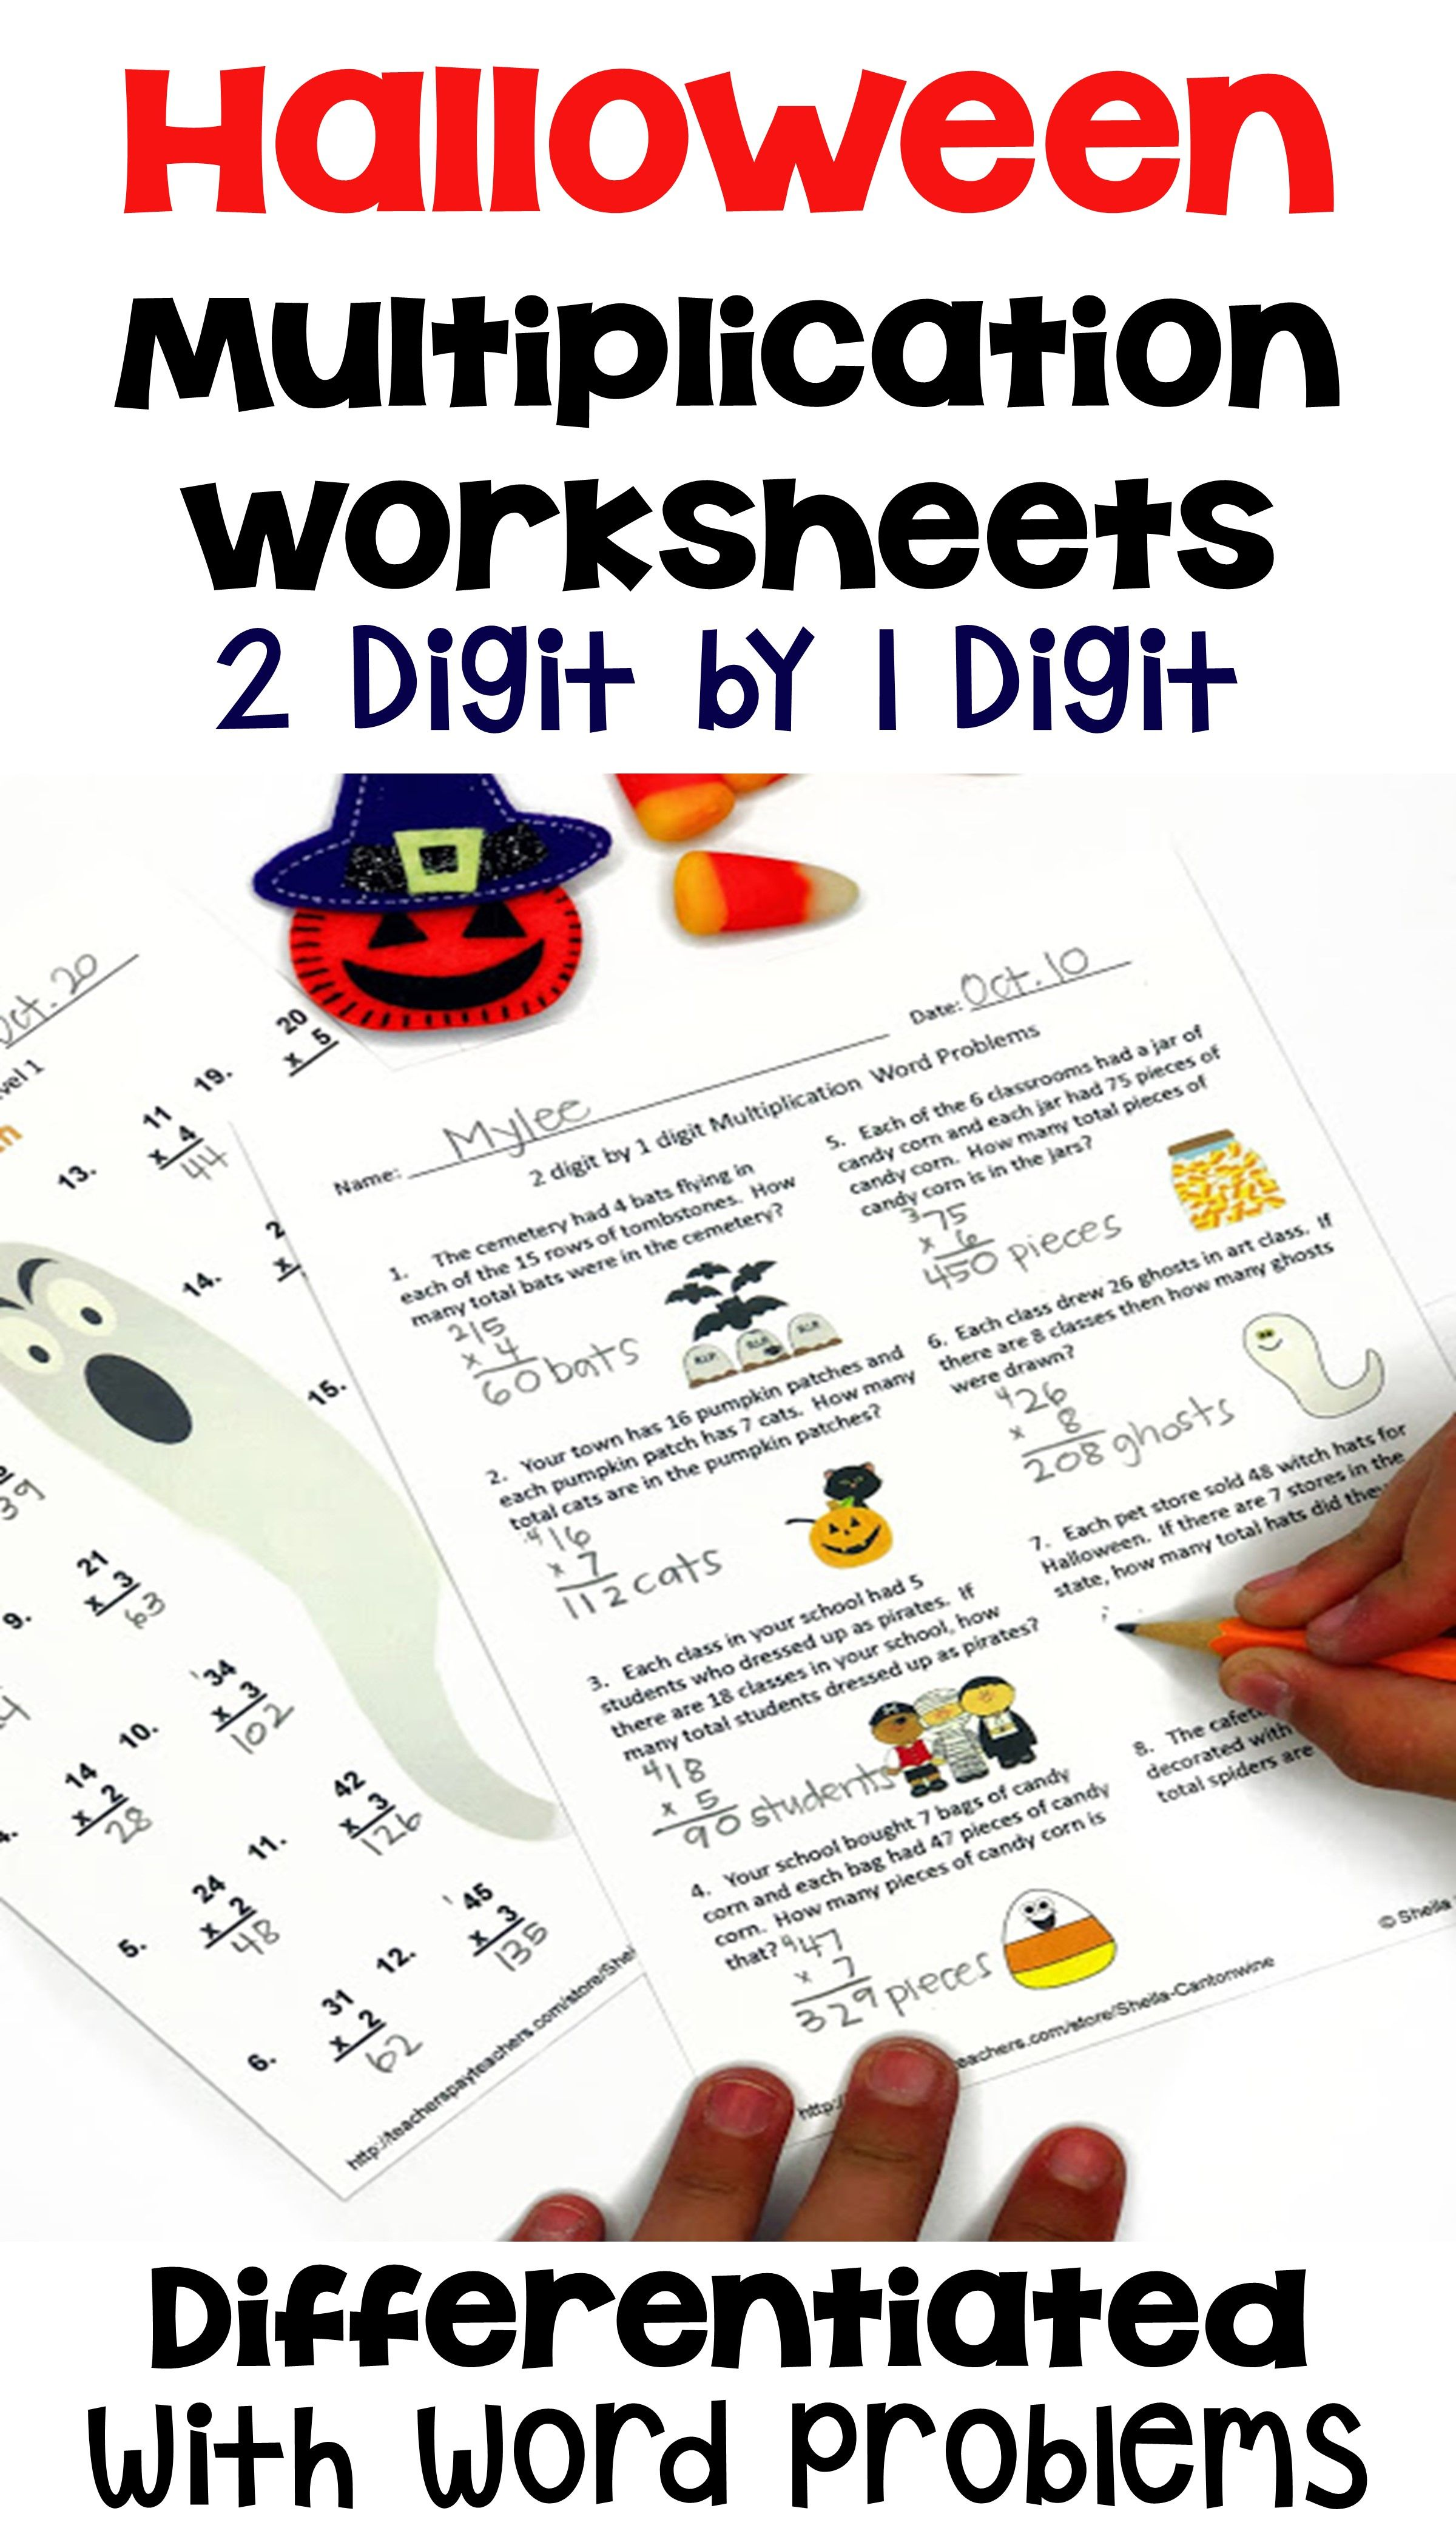 Halloween Multiplication Worksheets With Word Problems For Morning Work Centers Halloween Math Halloween Math Activities Differentiation Math [ 4200 x 2400 Pixel ]